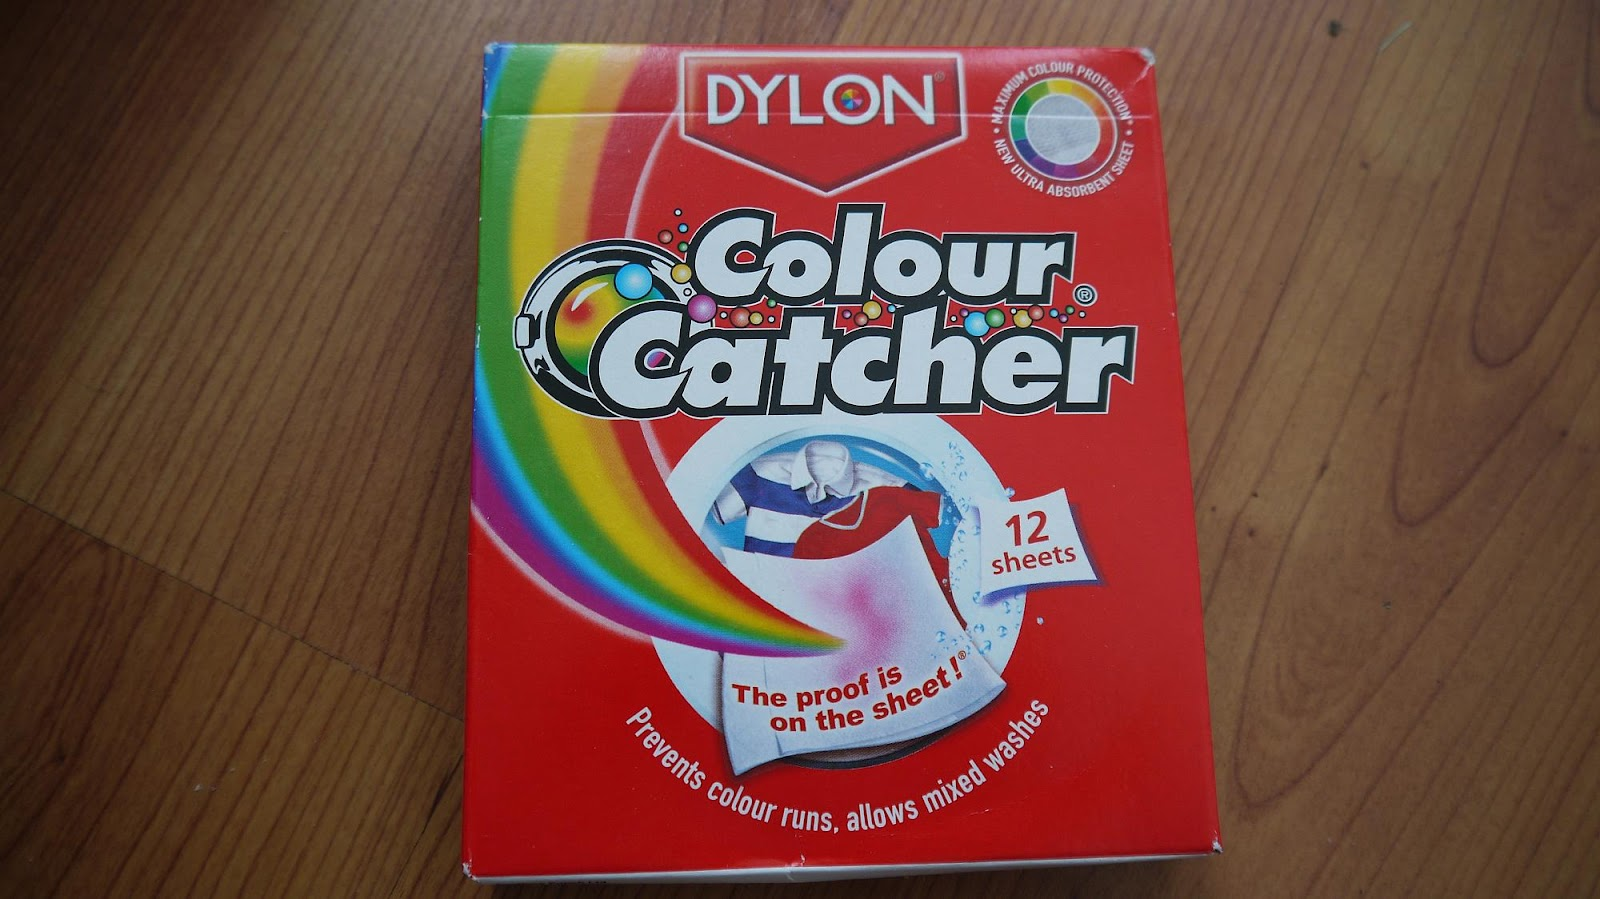 Colour catcher sheets - Mixed Load Laundry With Colour Catcher